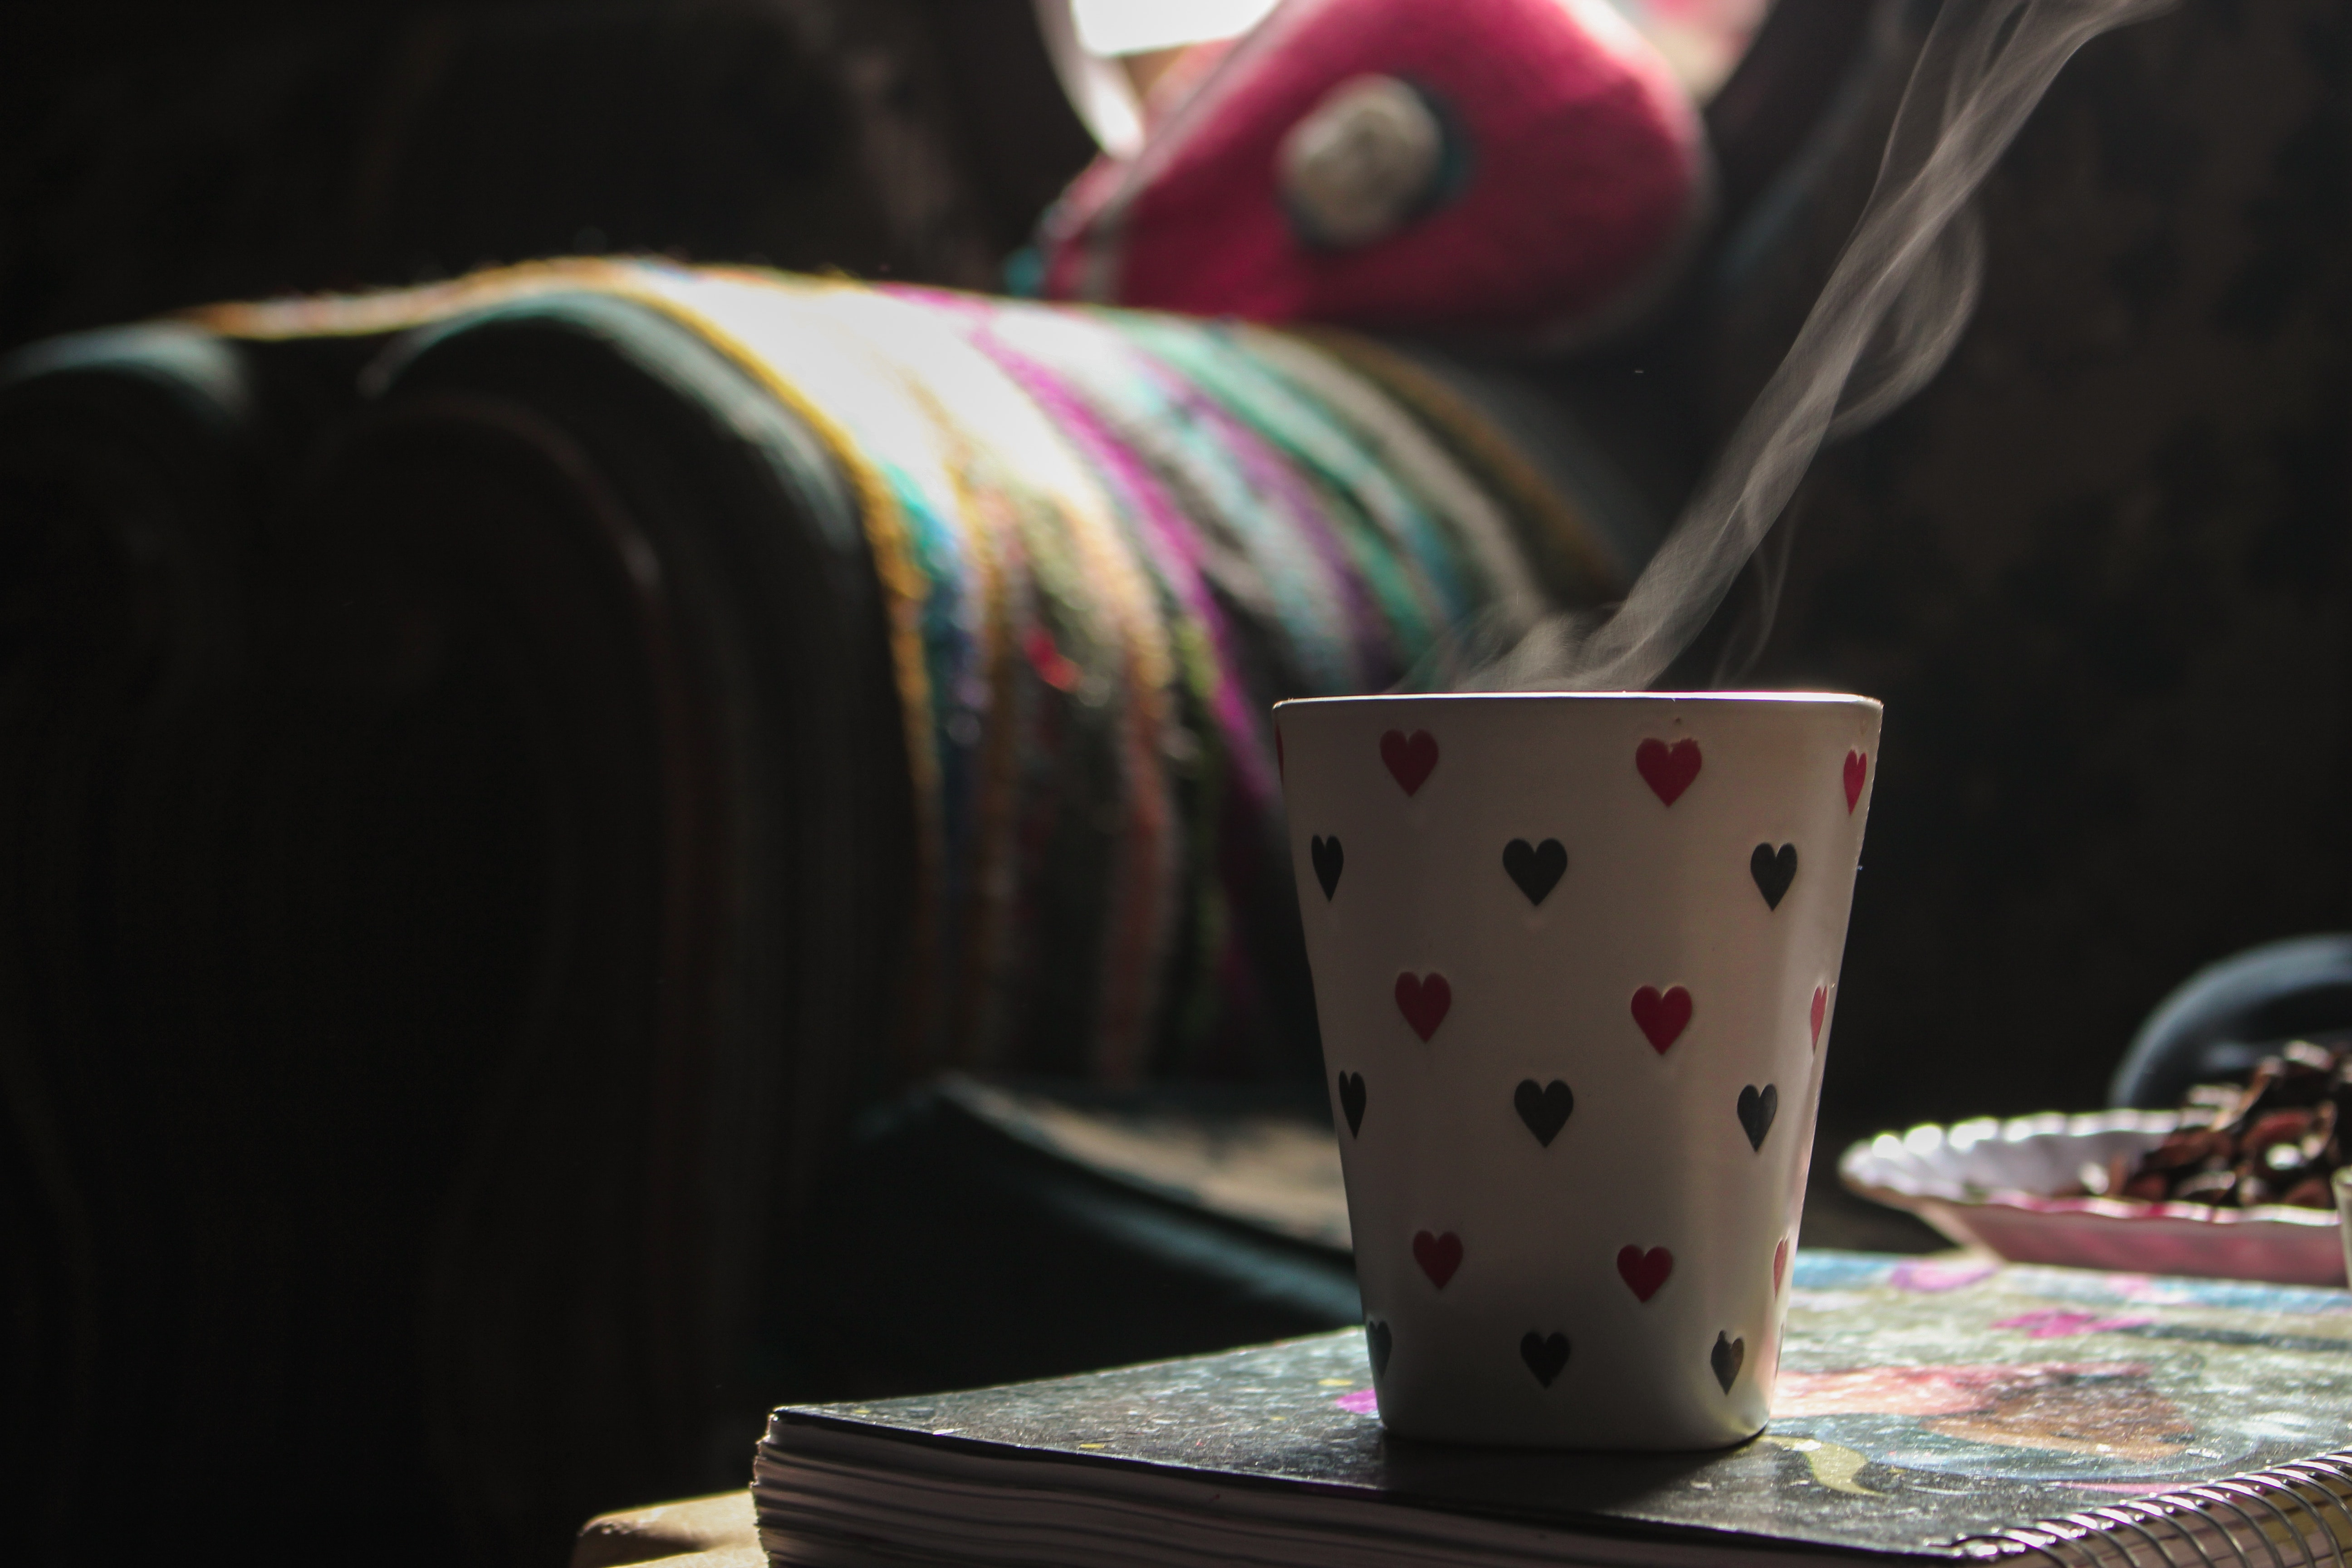 White Ceramic Cup on Book, Blur, Close-up, Coffee cup, Colors, HQ Photo